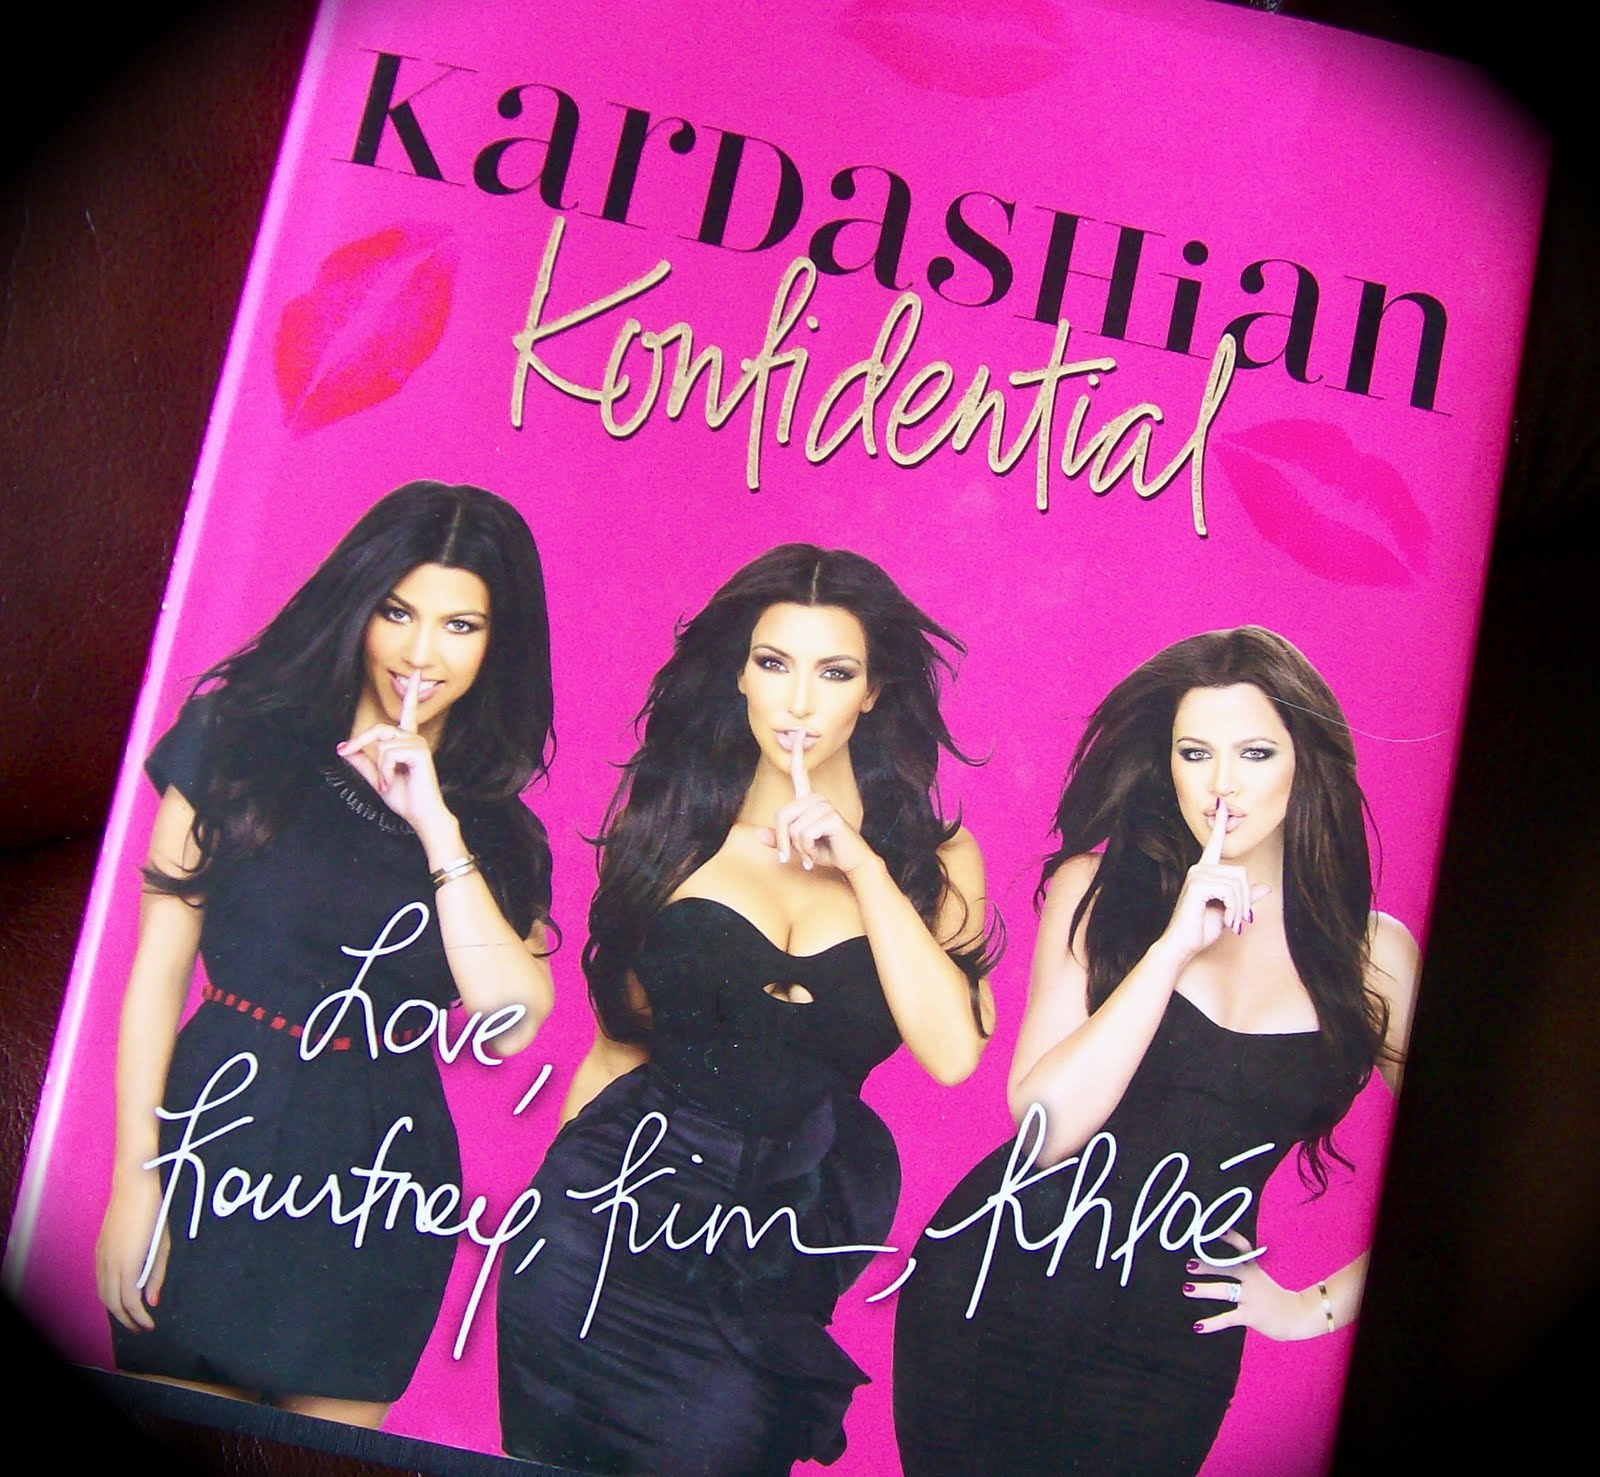 Help with the kardashian review?